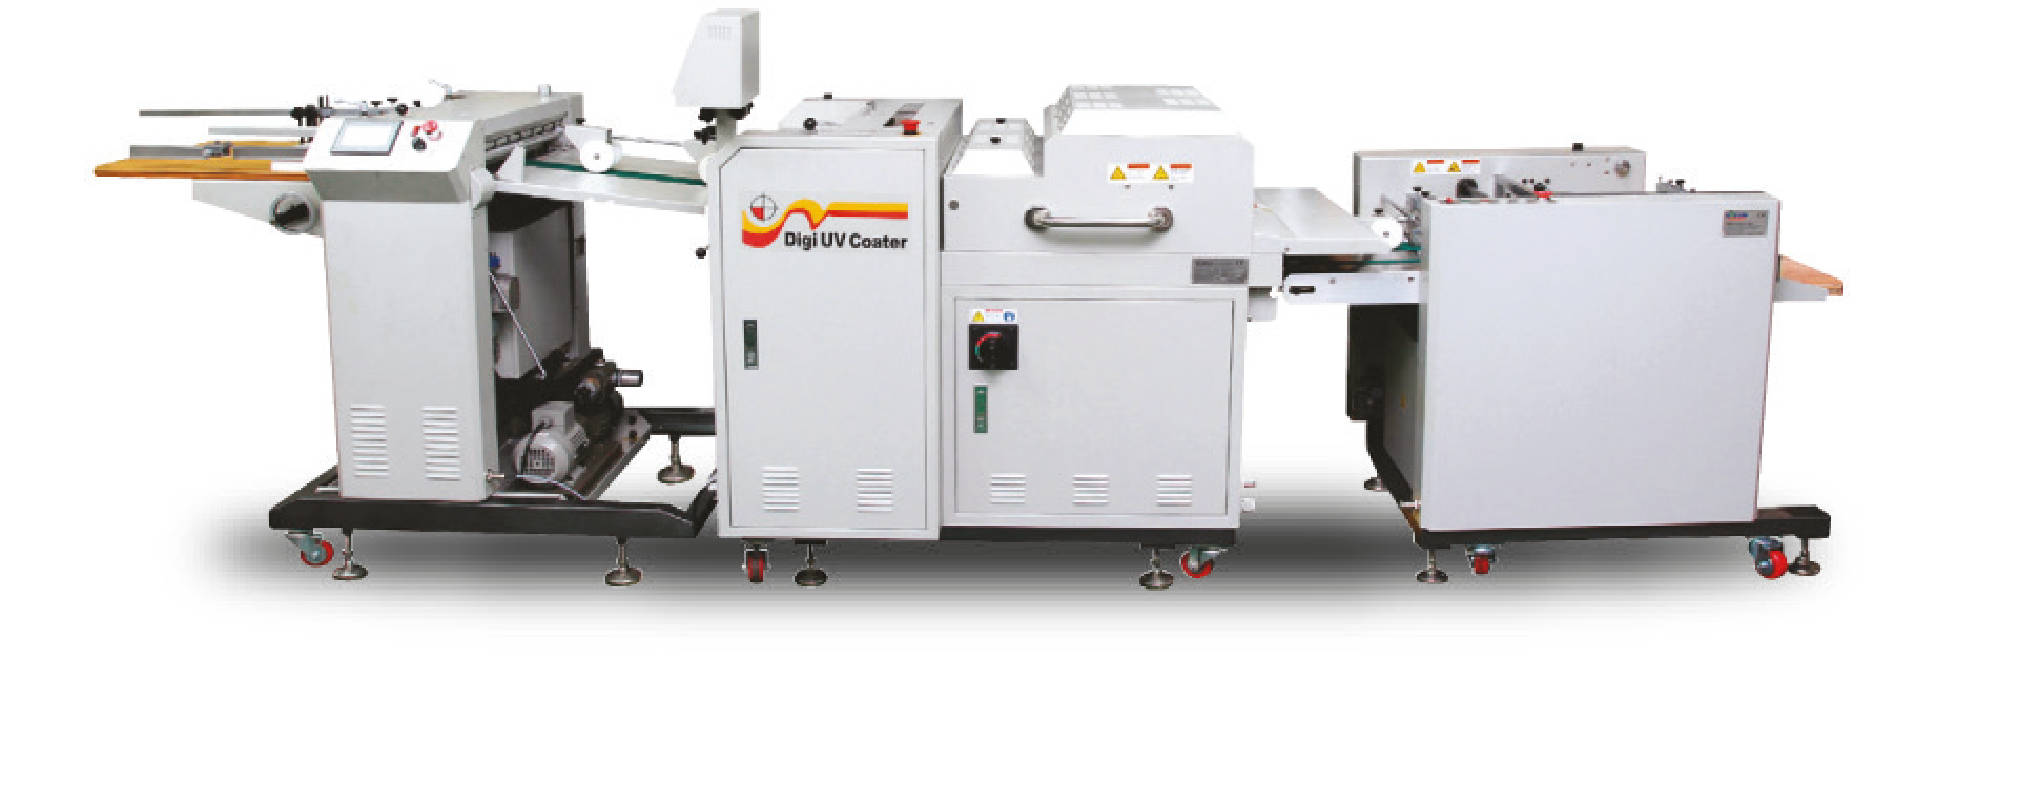 Kisun UV Coater